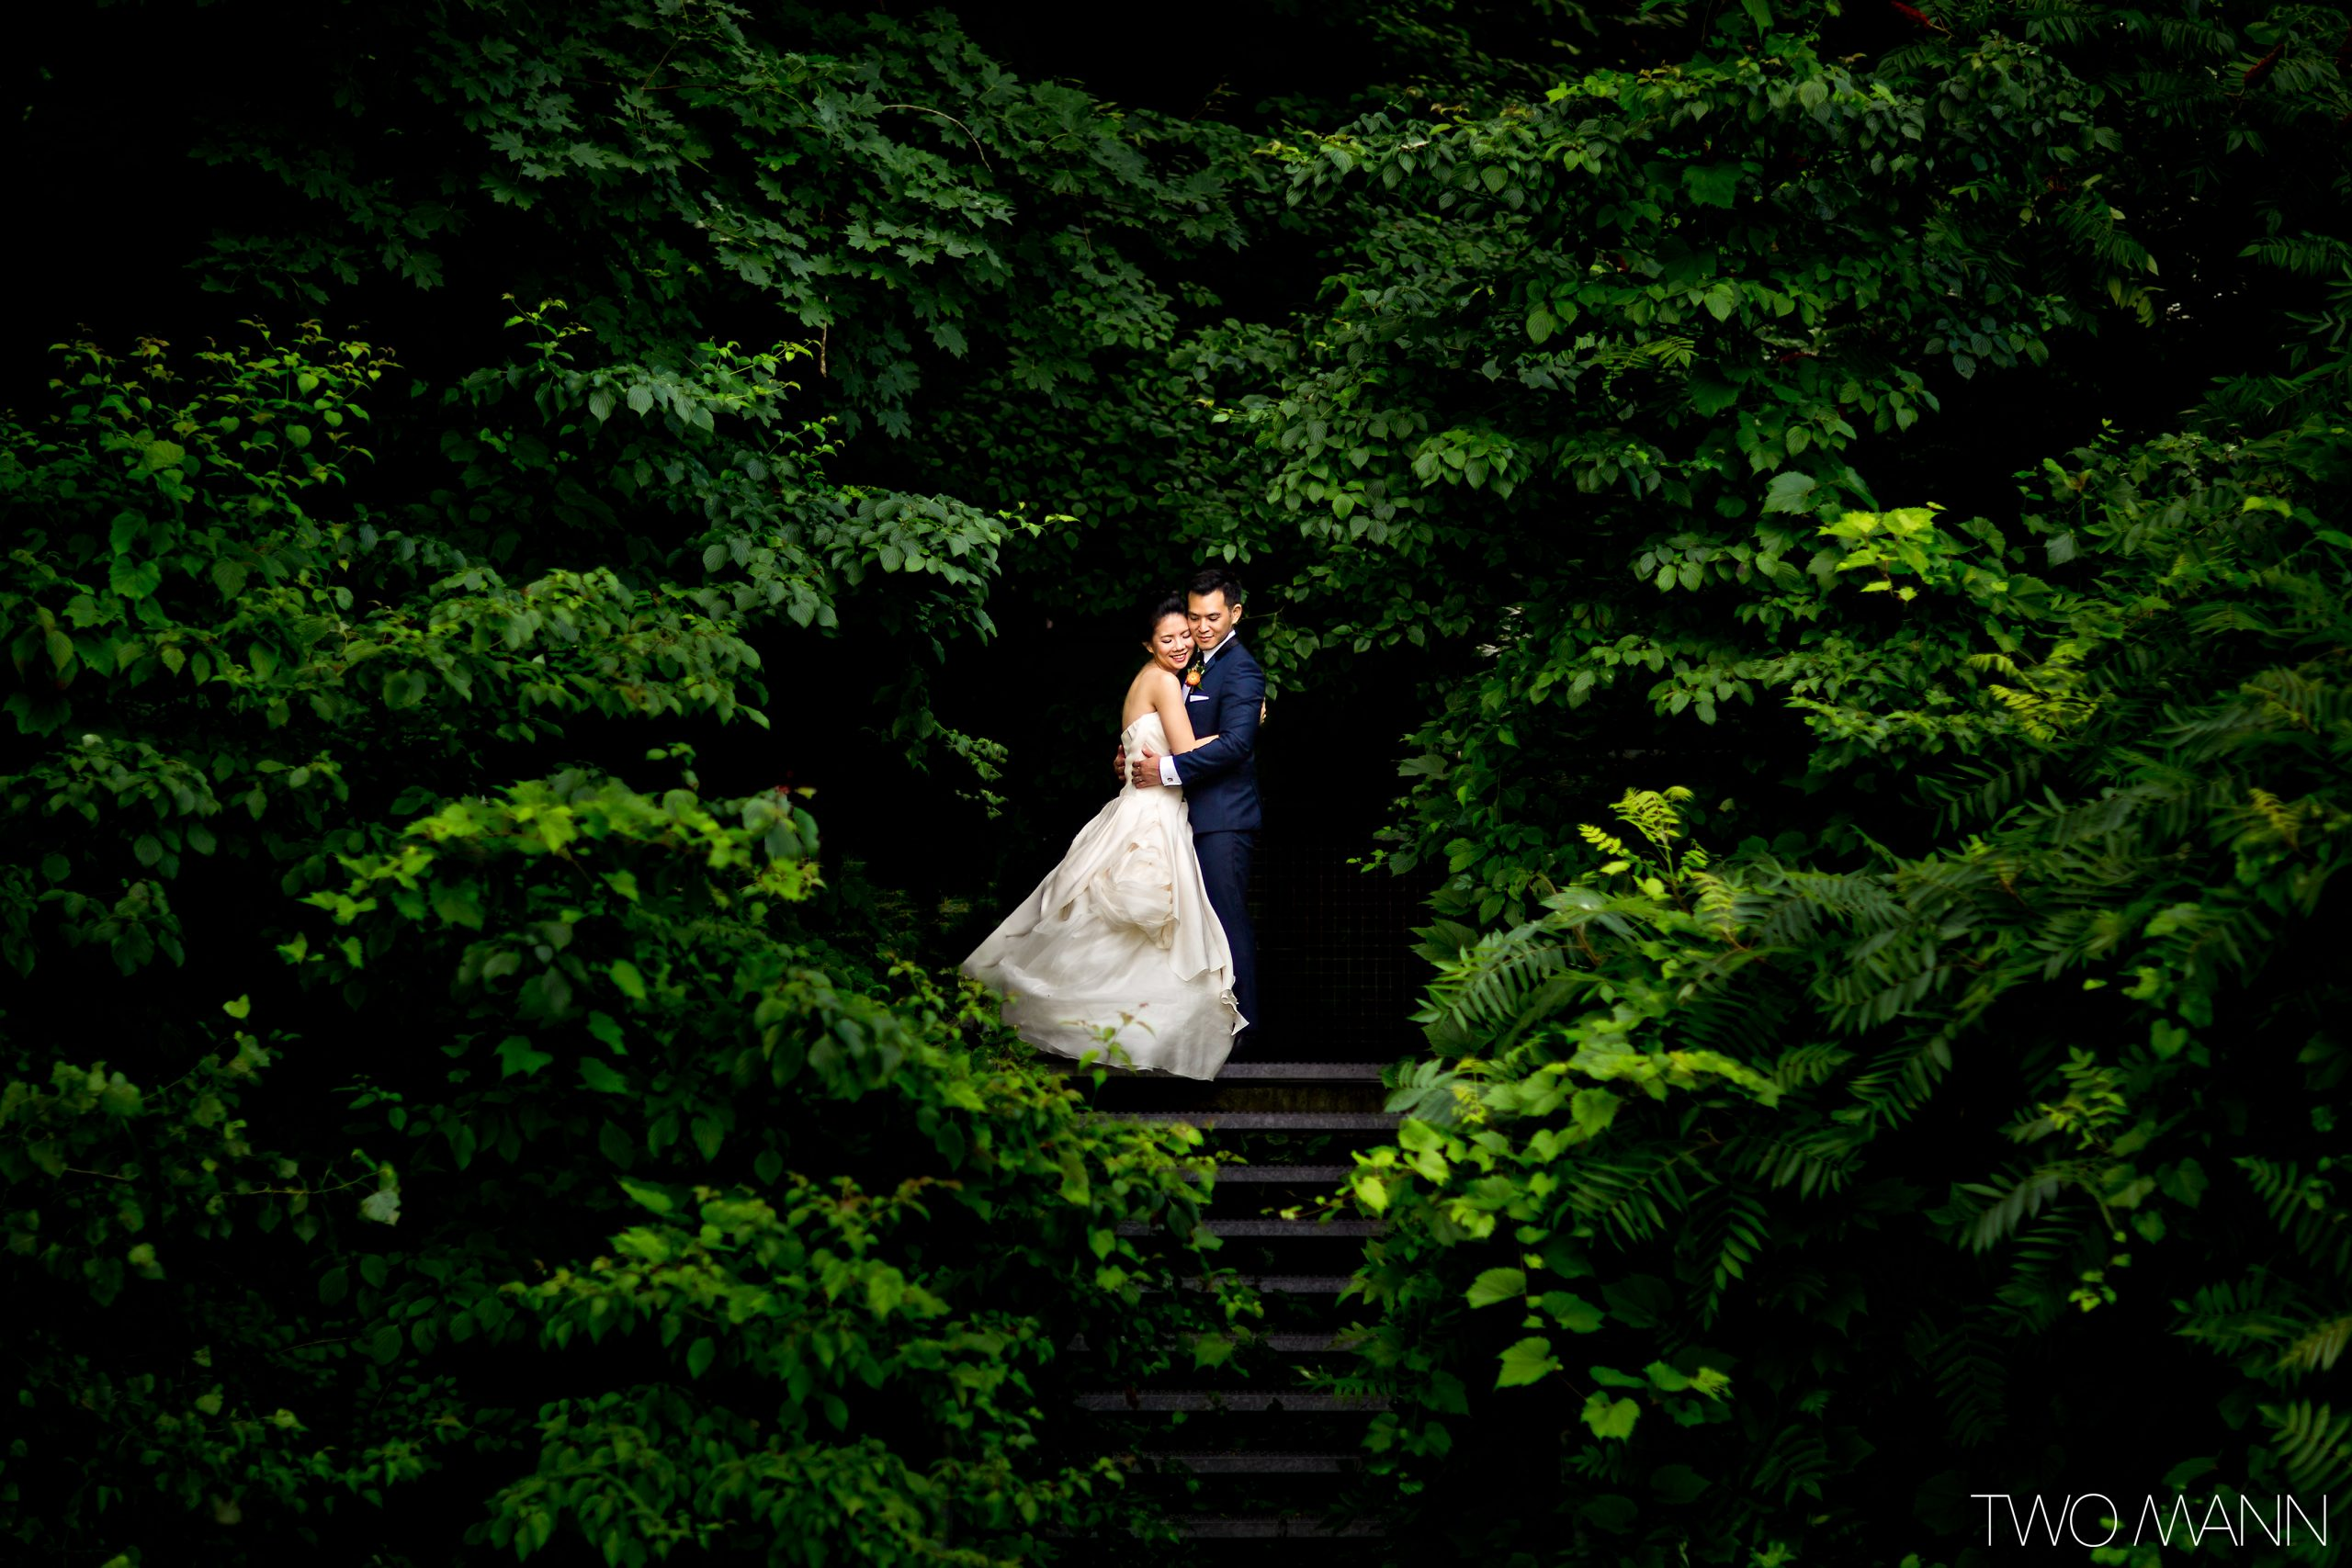 bride and groom portrait surrounded by green leafy trees